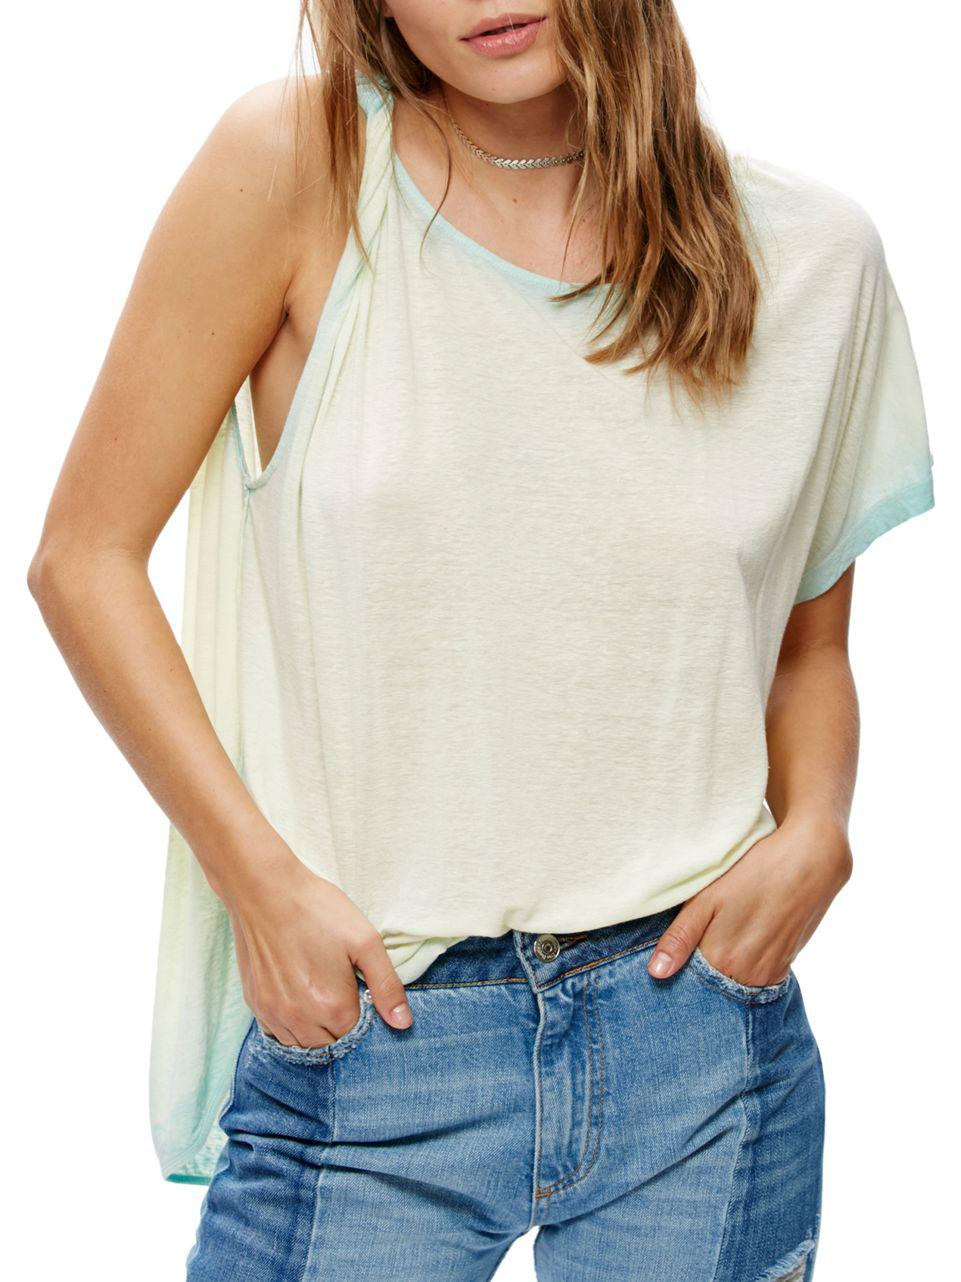 897183cb948aba Lyst - Free People Pluto One-shoulder Top in Blue